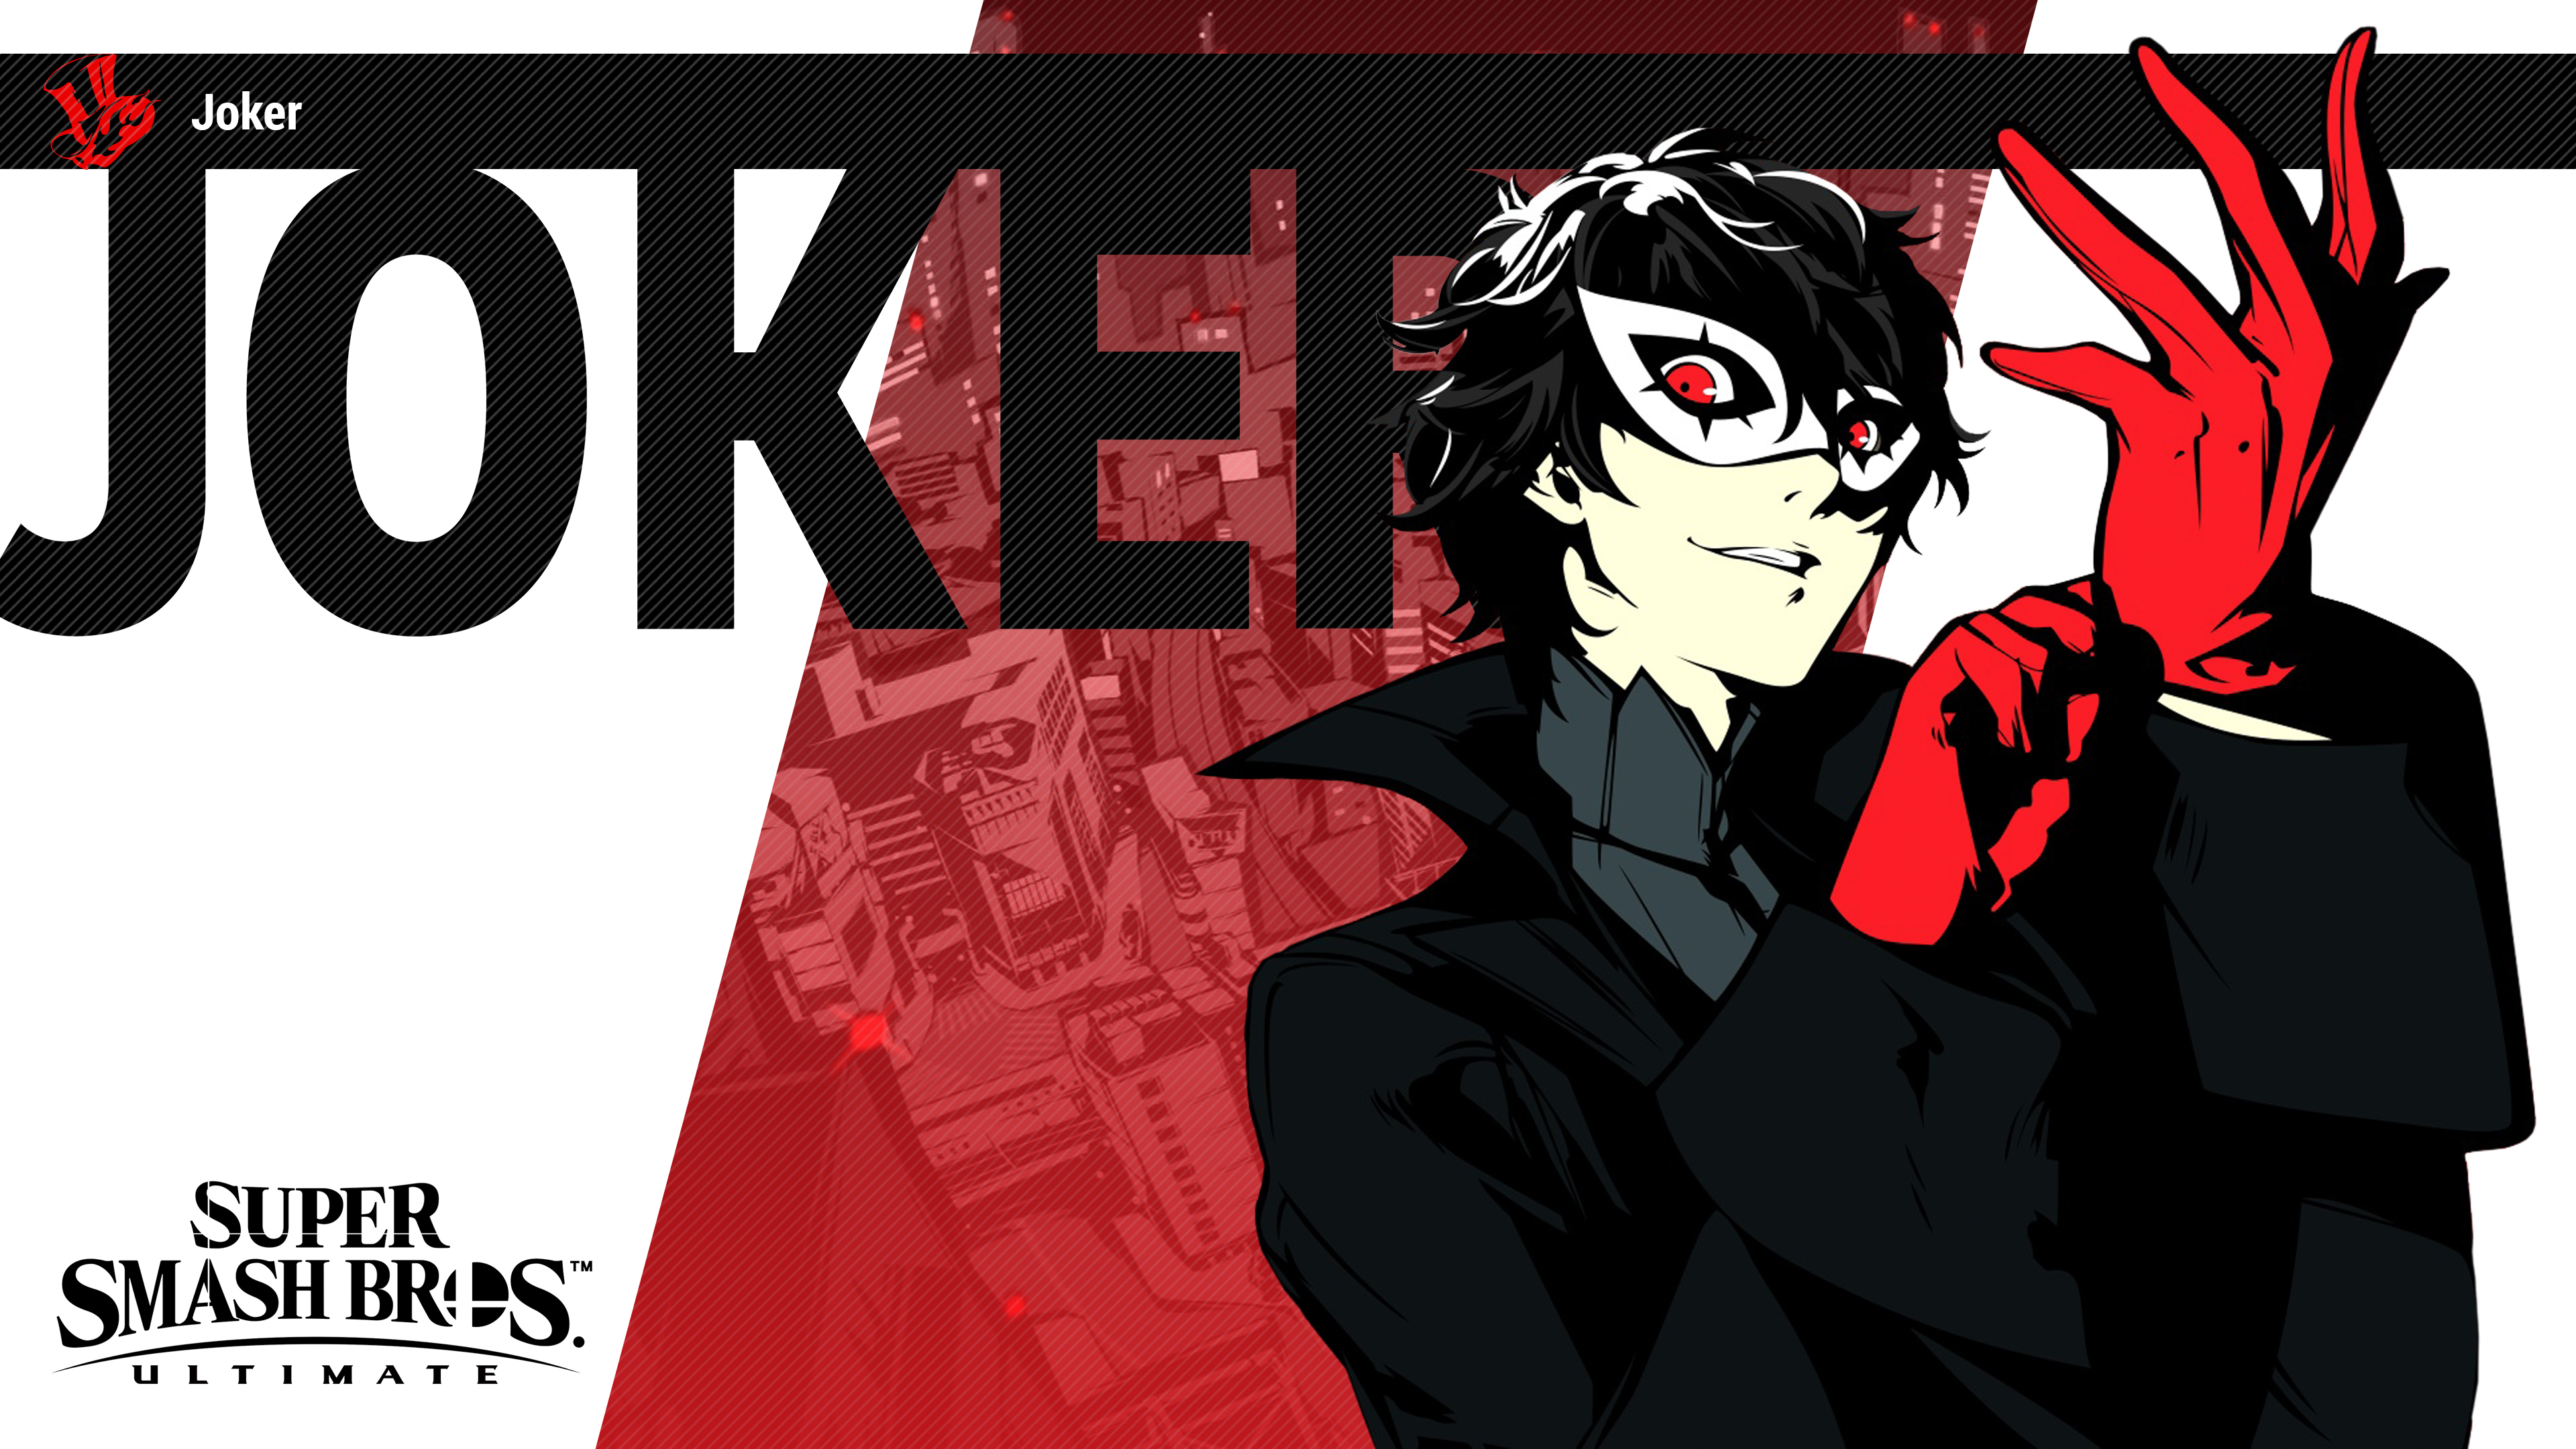 Joker in Smash